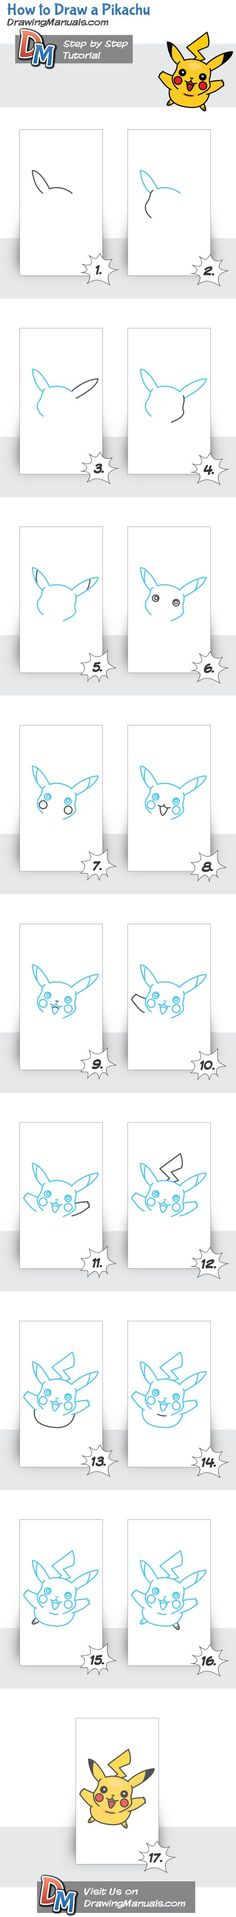 How to Draw Pikachu http://drawingmanuals.com/manual/how-to-draw-a-pikachu/ #drawing #tutorials #: